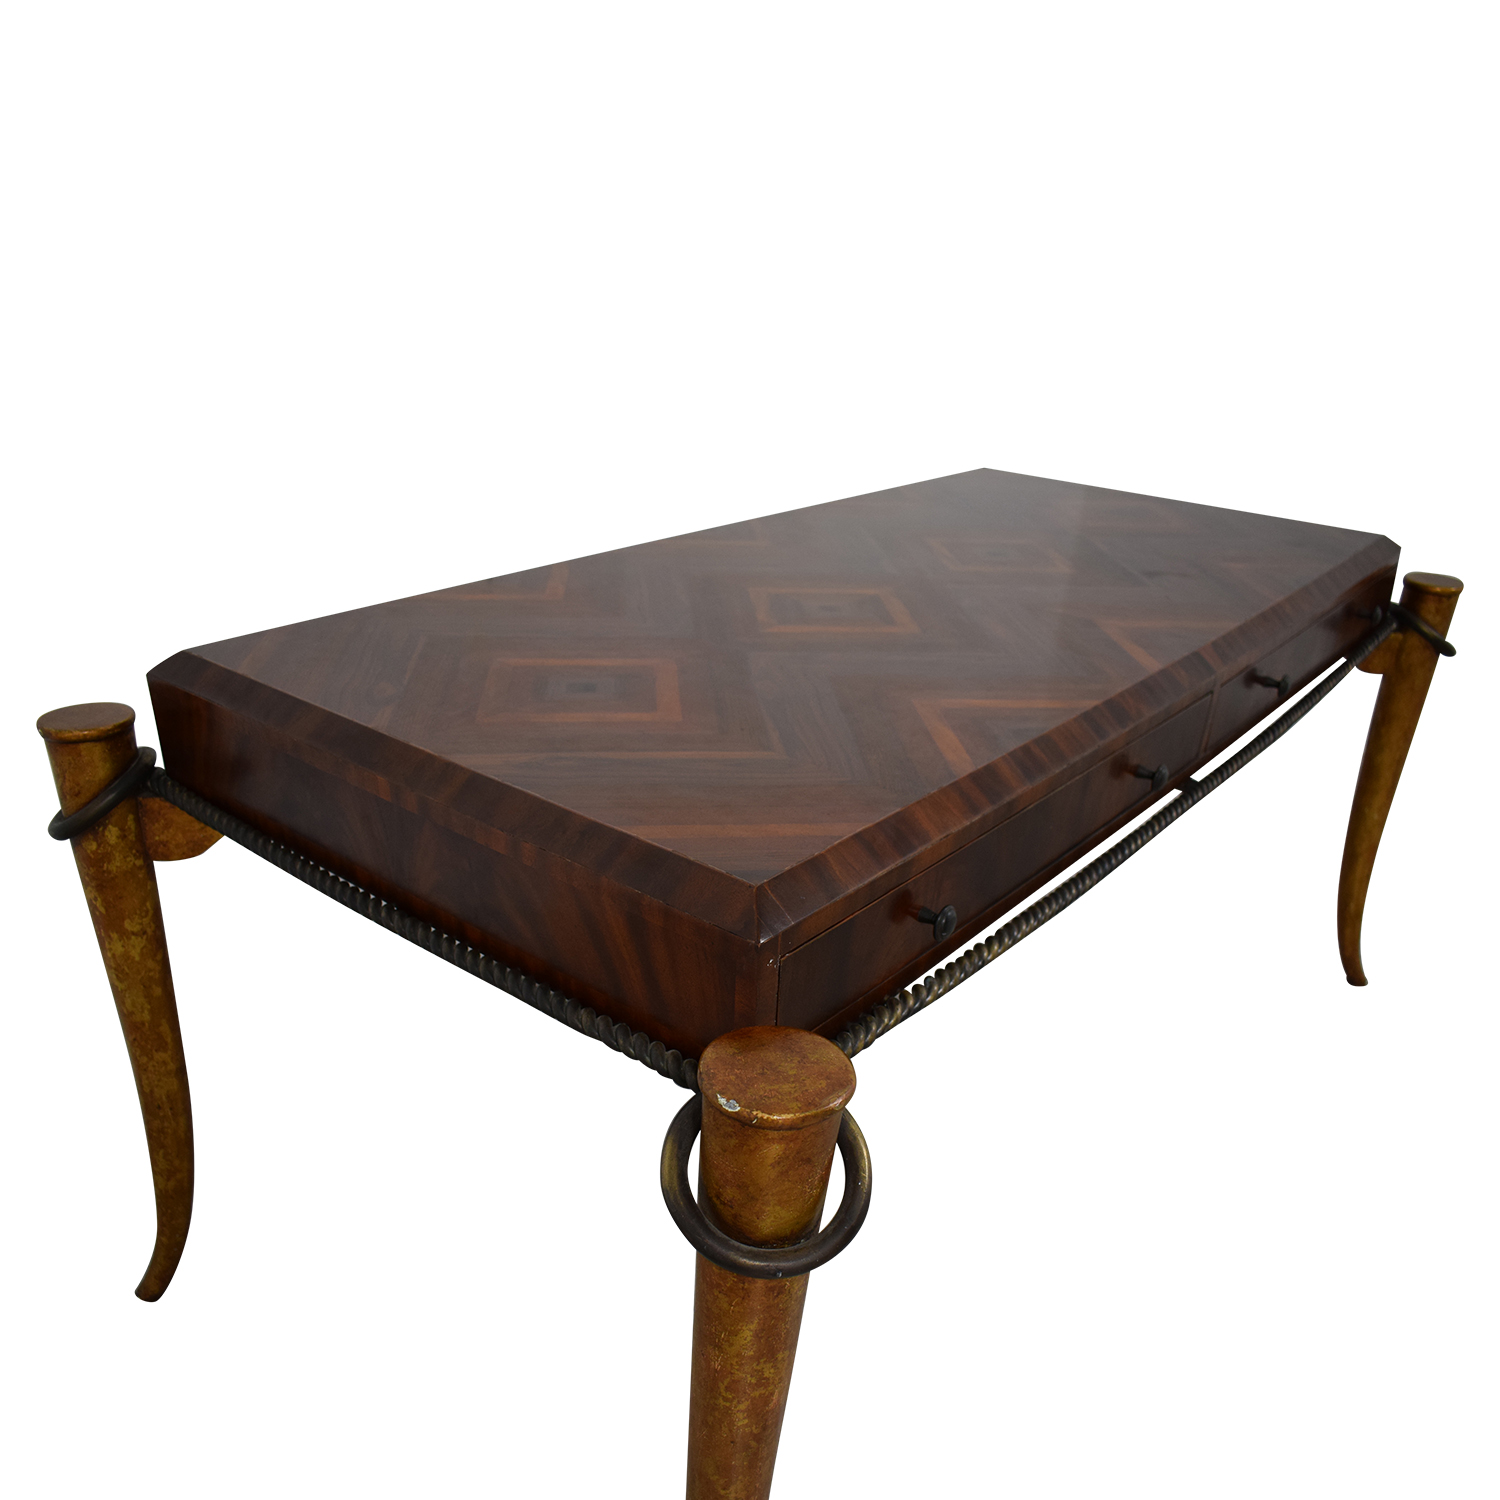 Maitland-Smith Maitland-Smith Rosewood Inlaid Desk discount